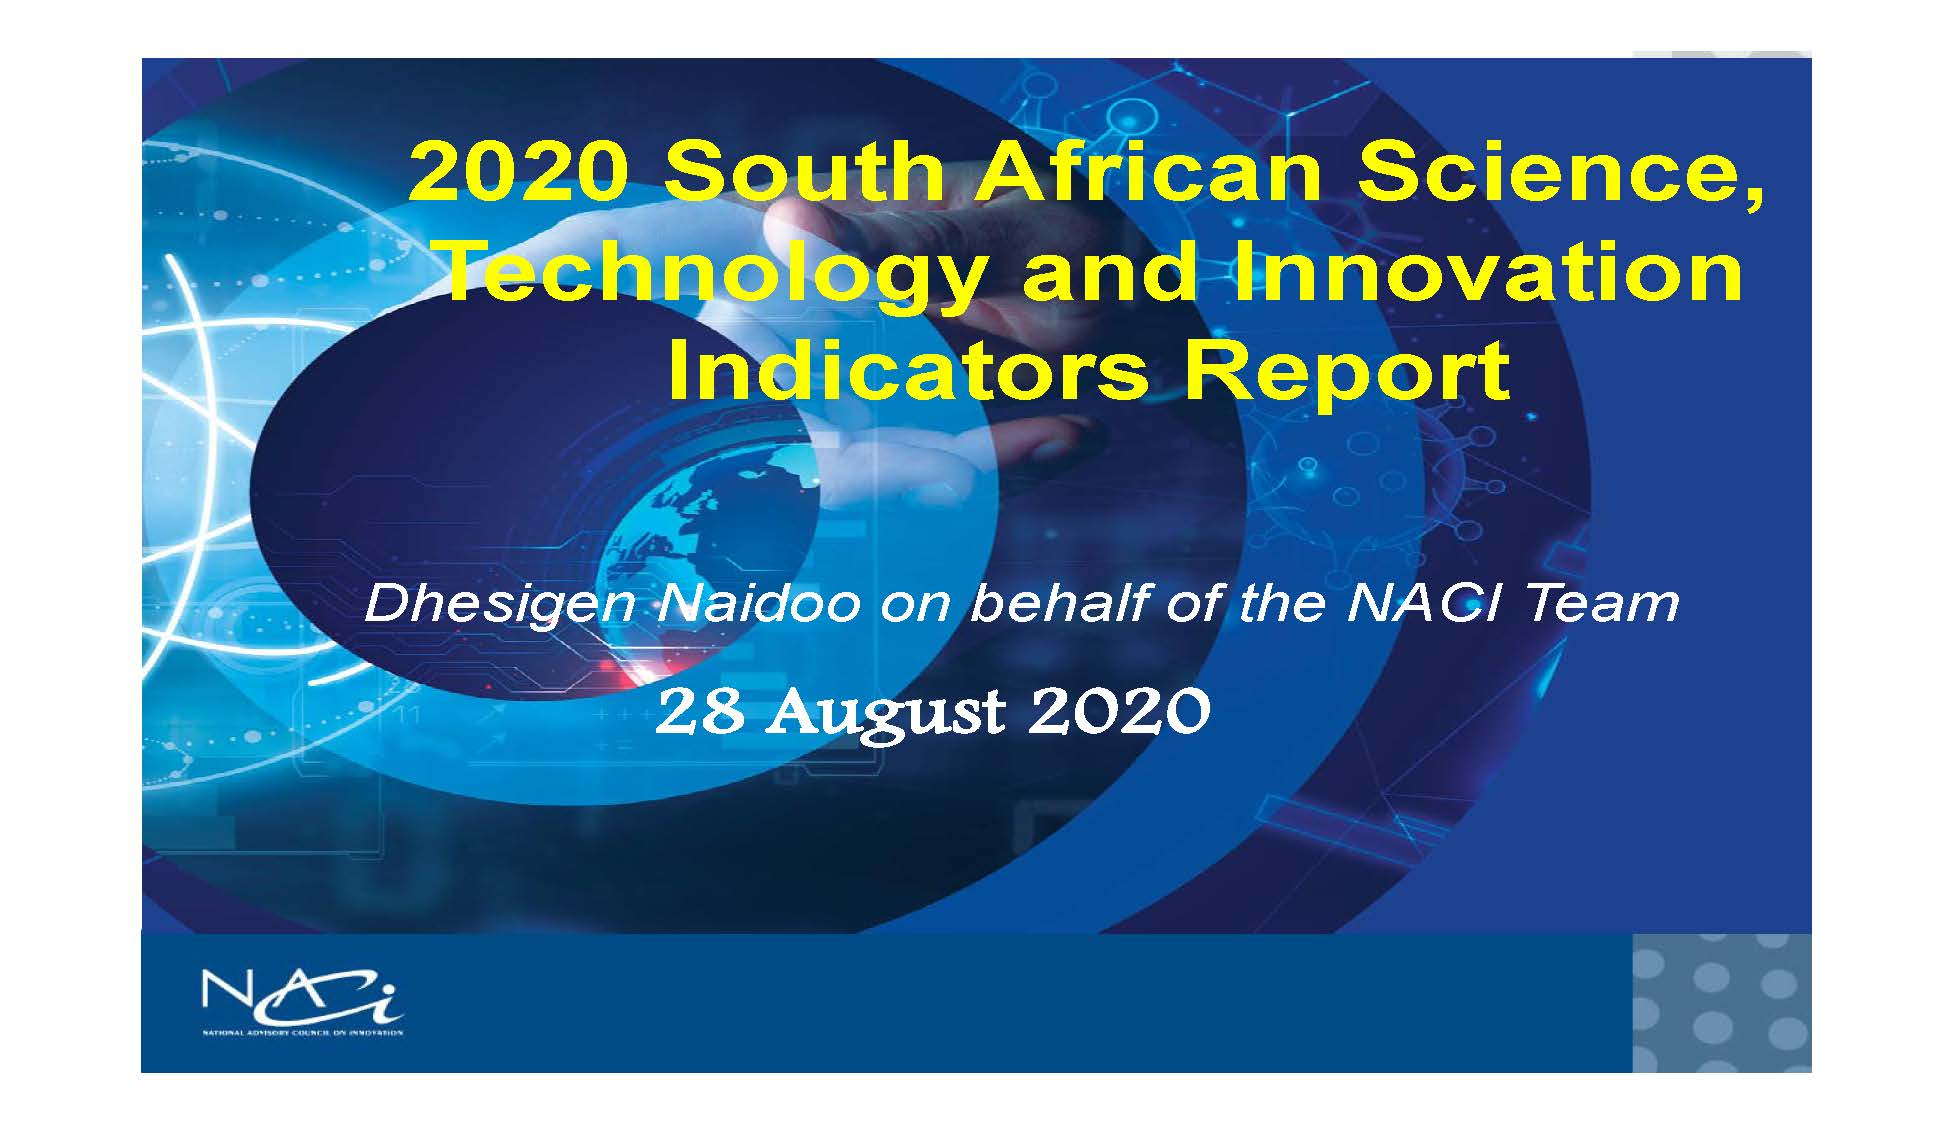 NACI Presentation on 2020 Science Technology and Innovation Indicators Report by Mr Naidoo